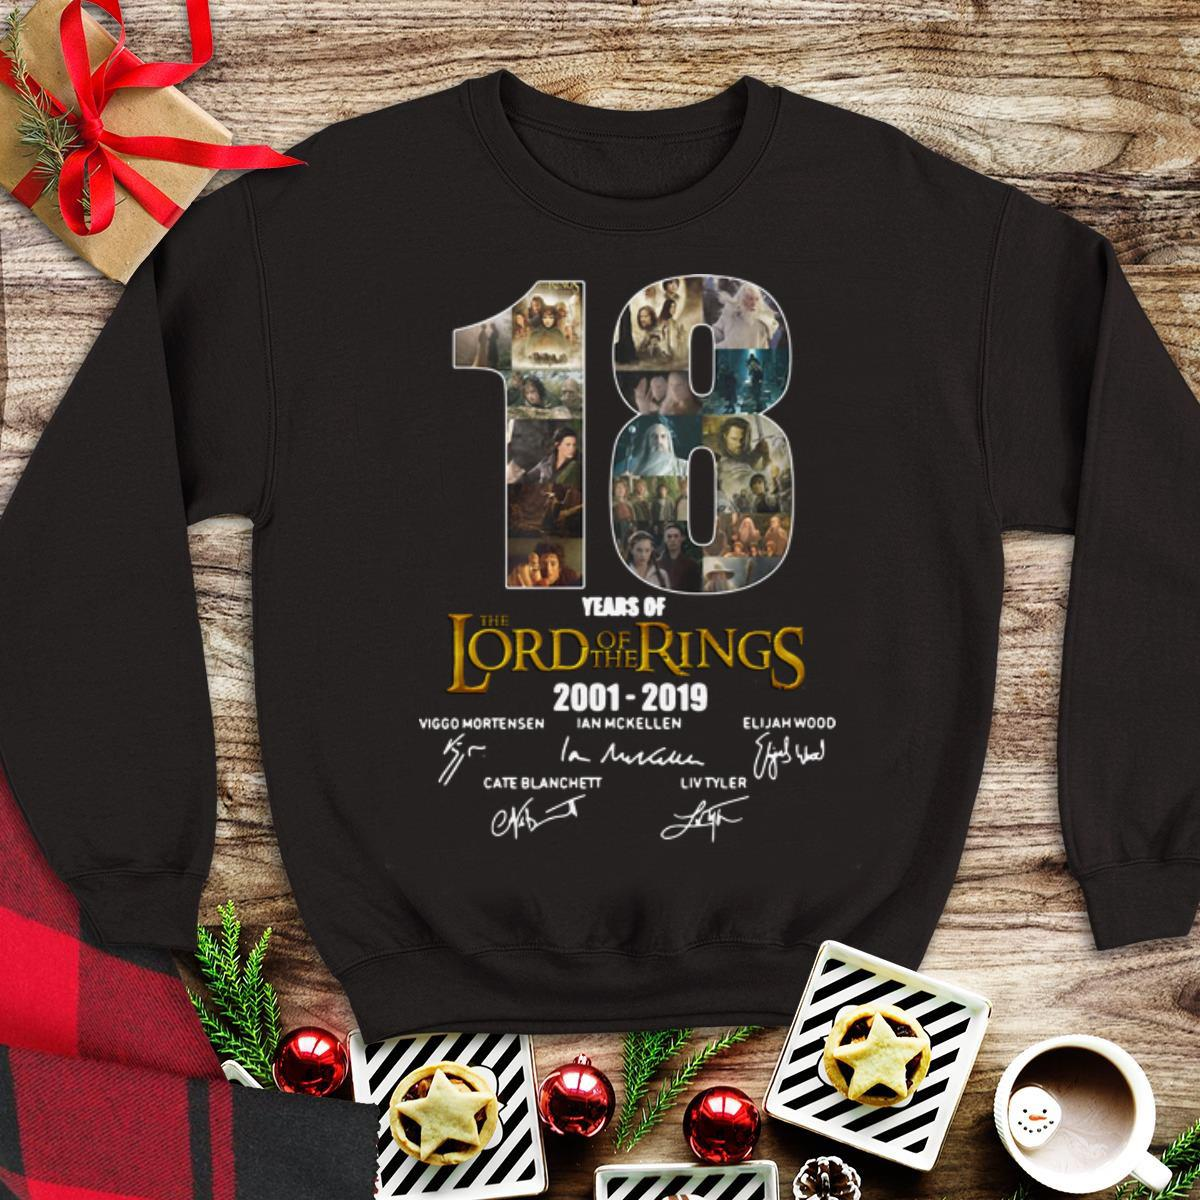 Hot 18 Years Of The Lord Of The Rings 2001-2019 Signatures shirt